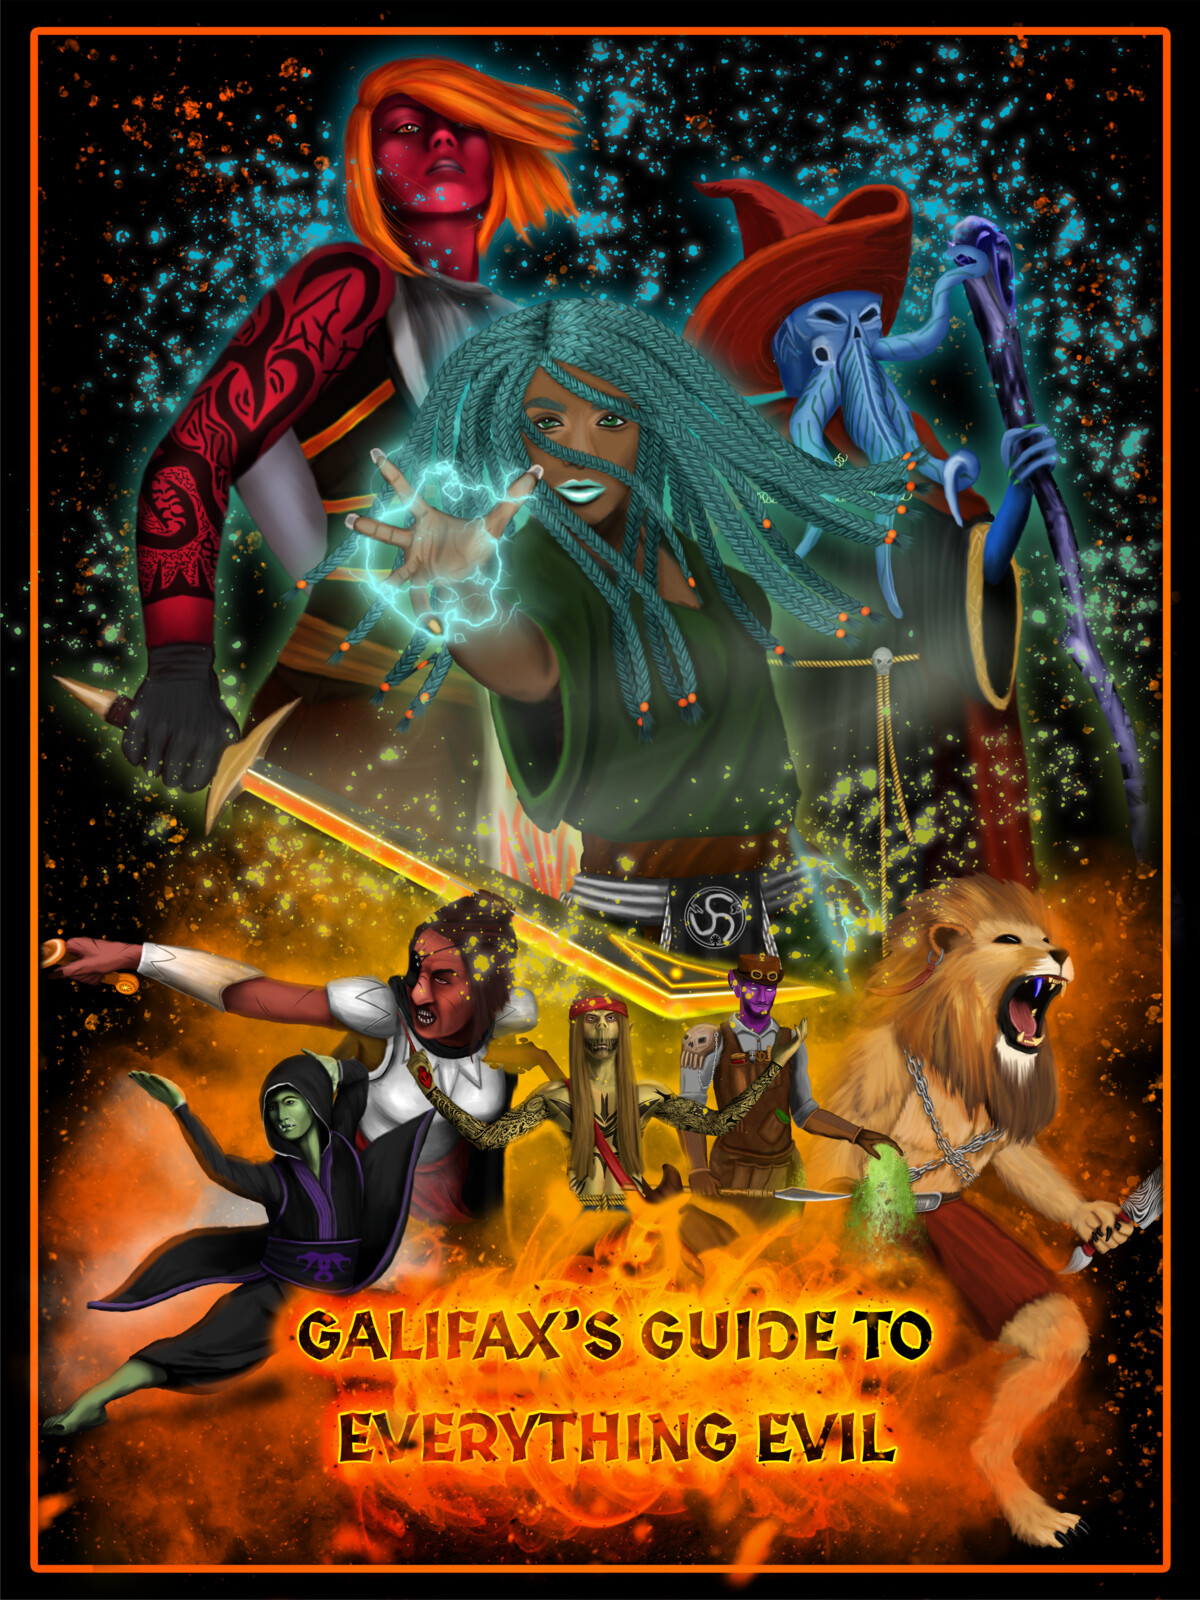 Galfiax's Guide To Everything Evil - Promo Poster